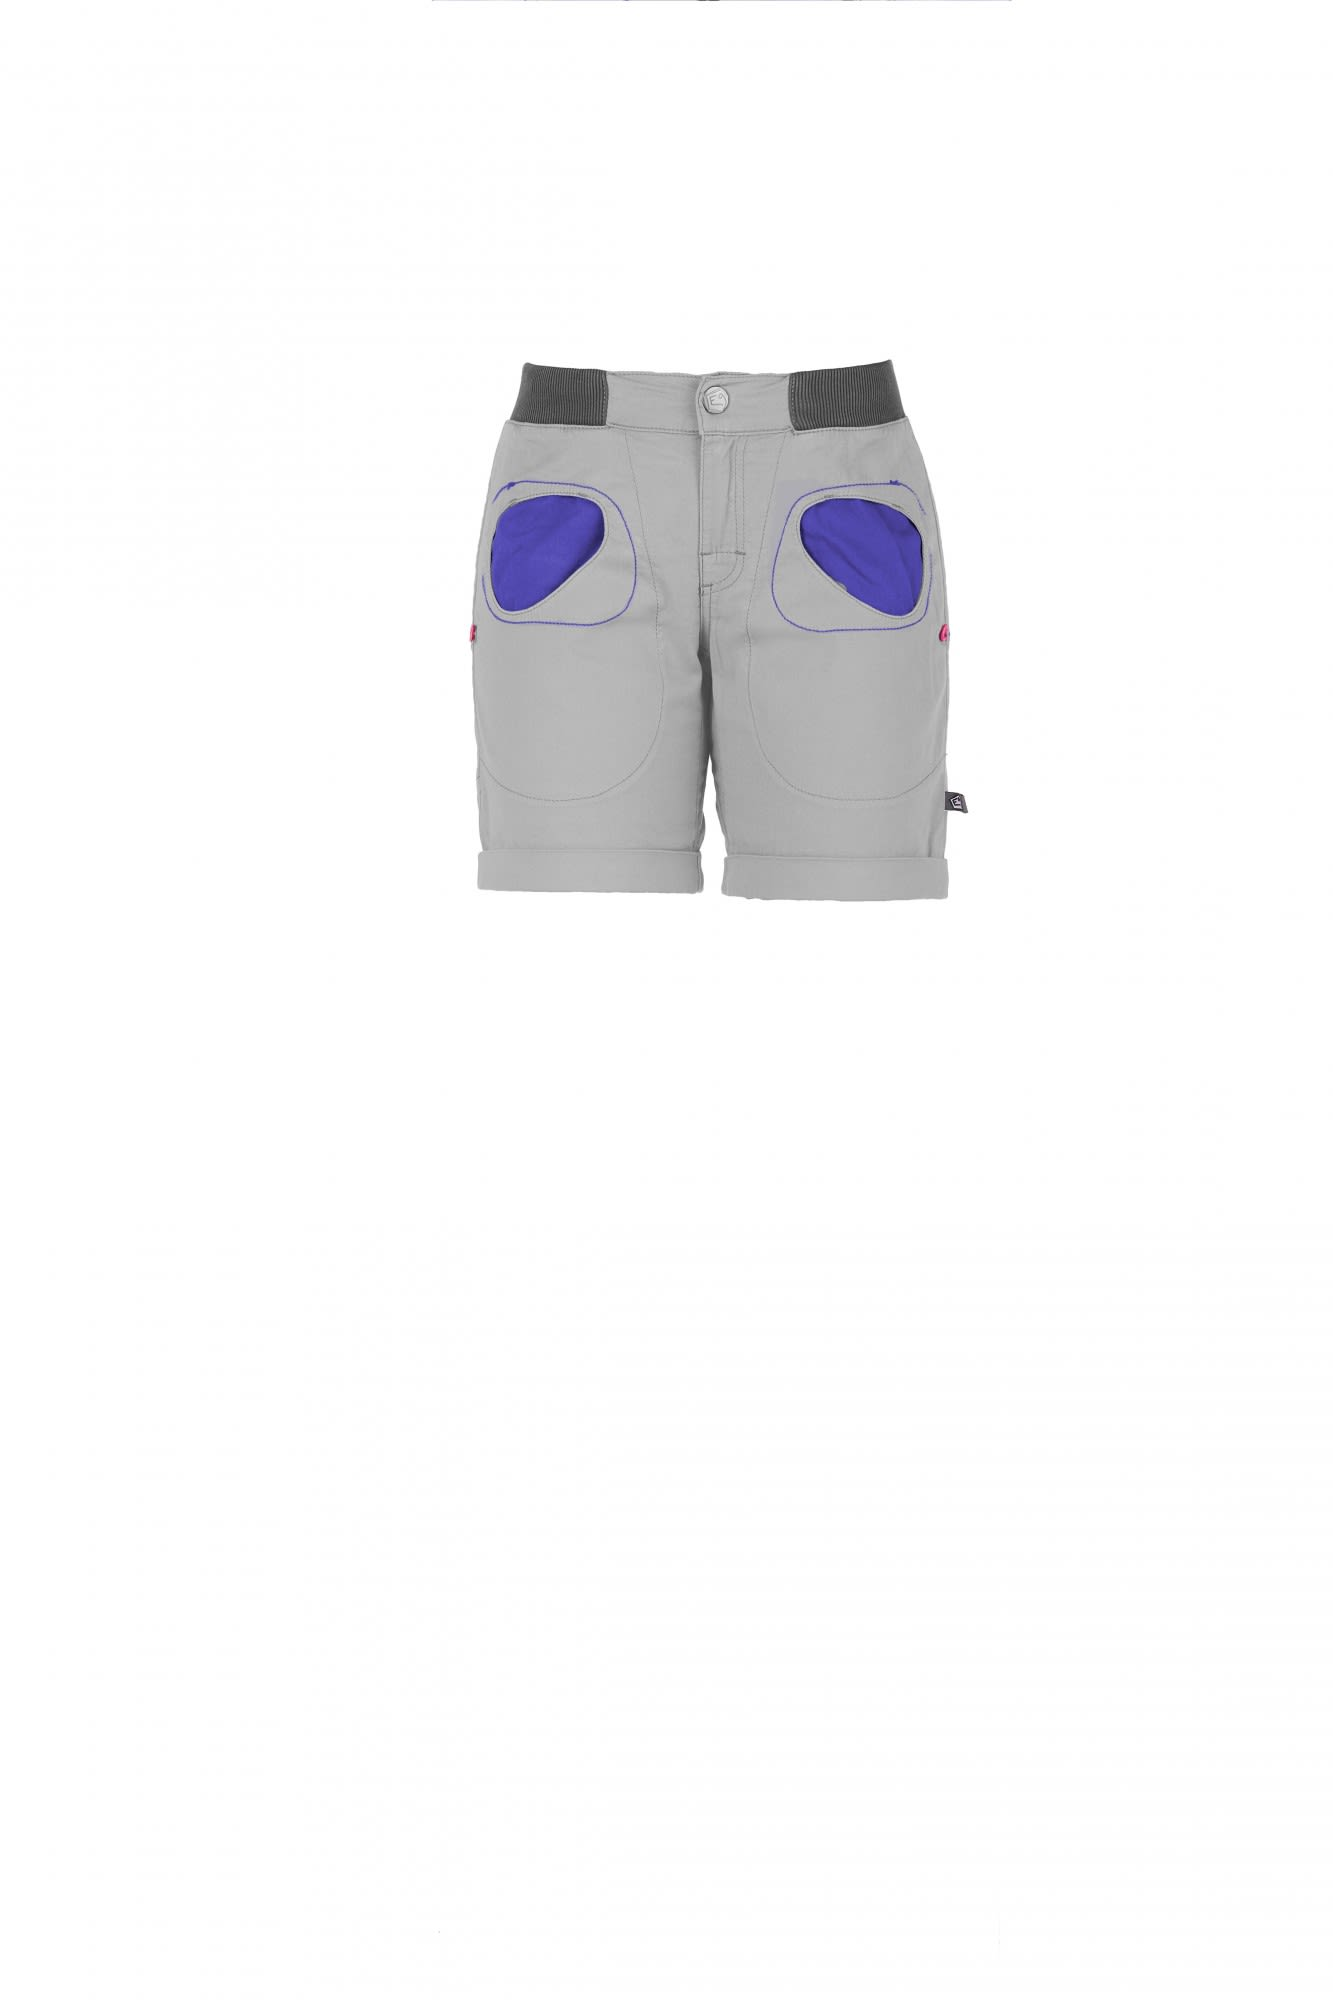 E9 Onda Short Grau, Female Shorts, L